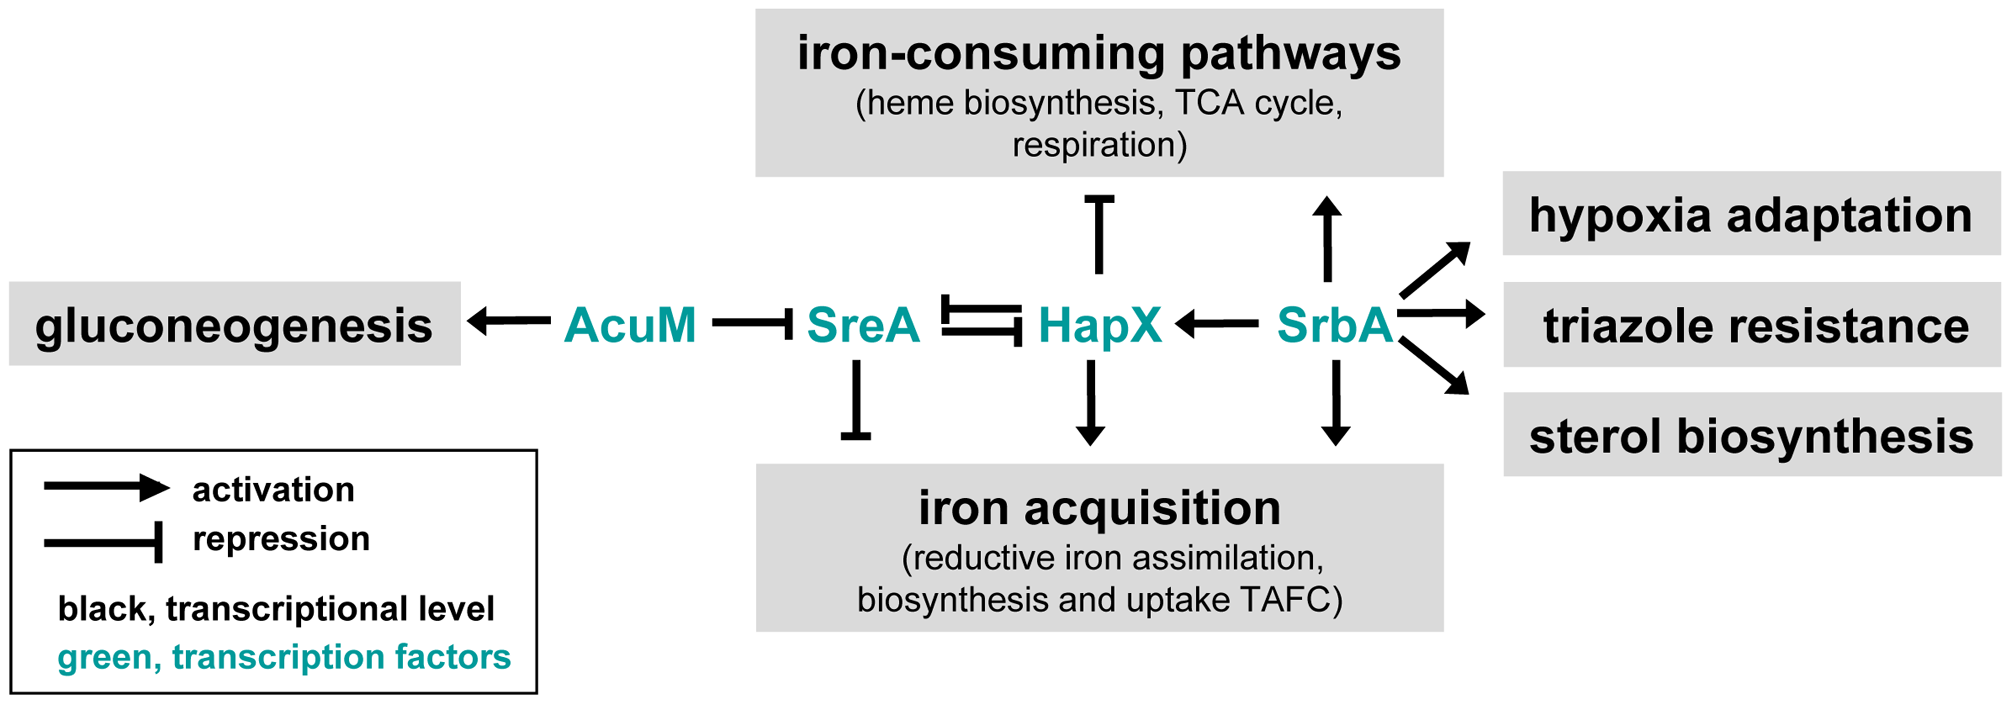 Model for relationships between the transcriptional regulators SrbA, SreA, HapX, and AcuM and their roles in iron acquisition and ergosterol biosynthesis.